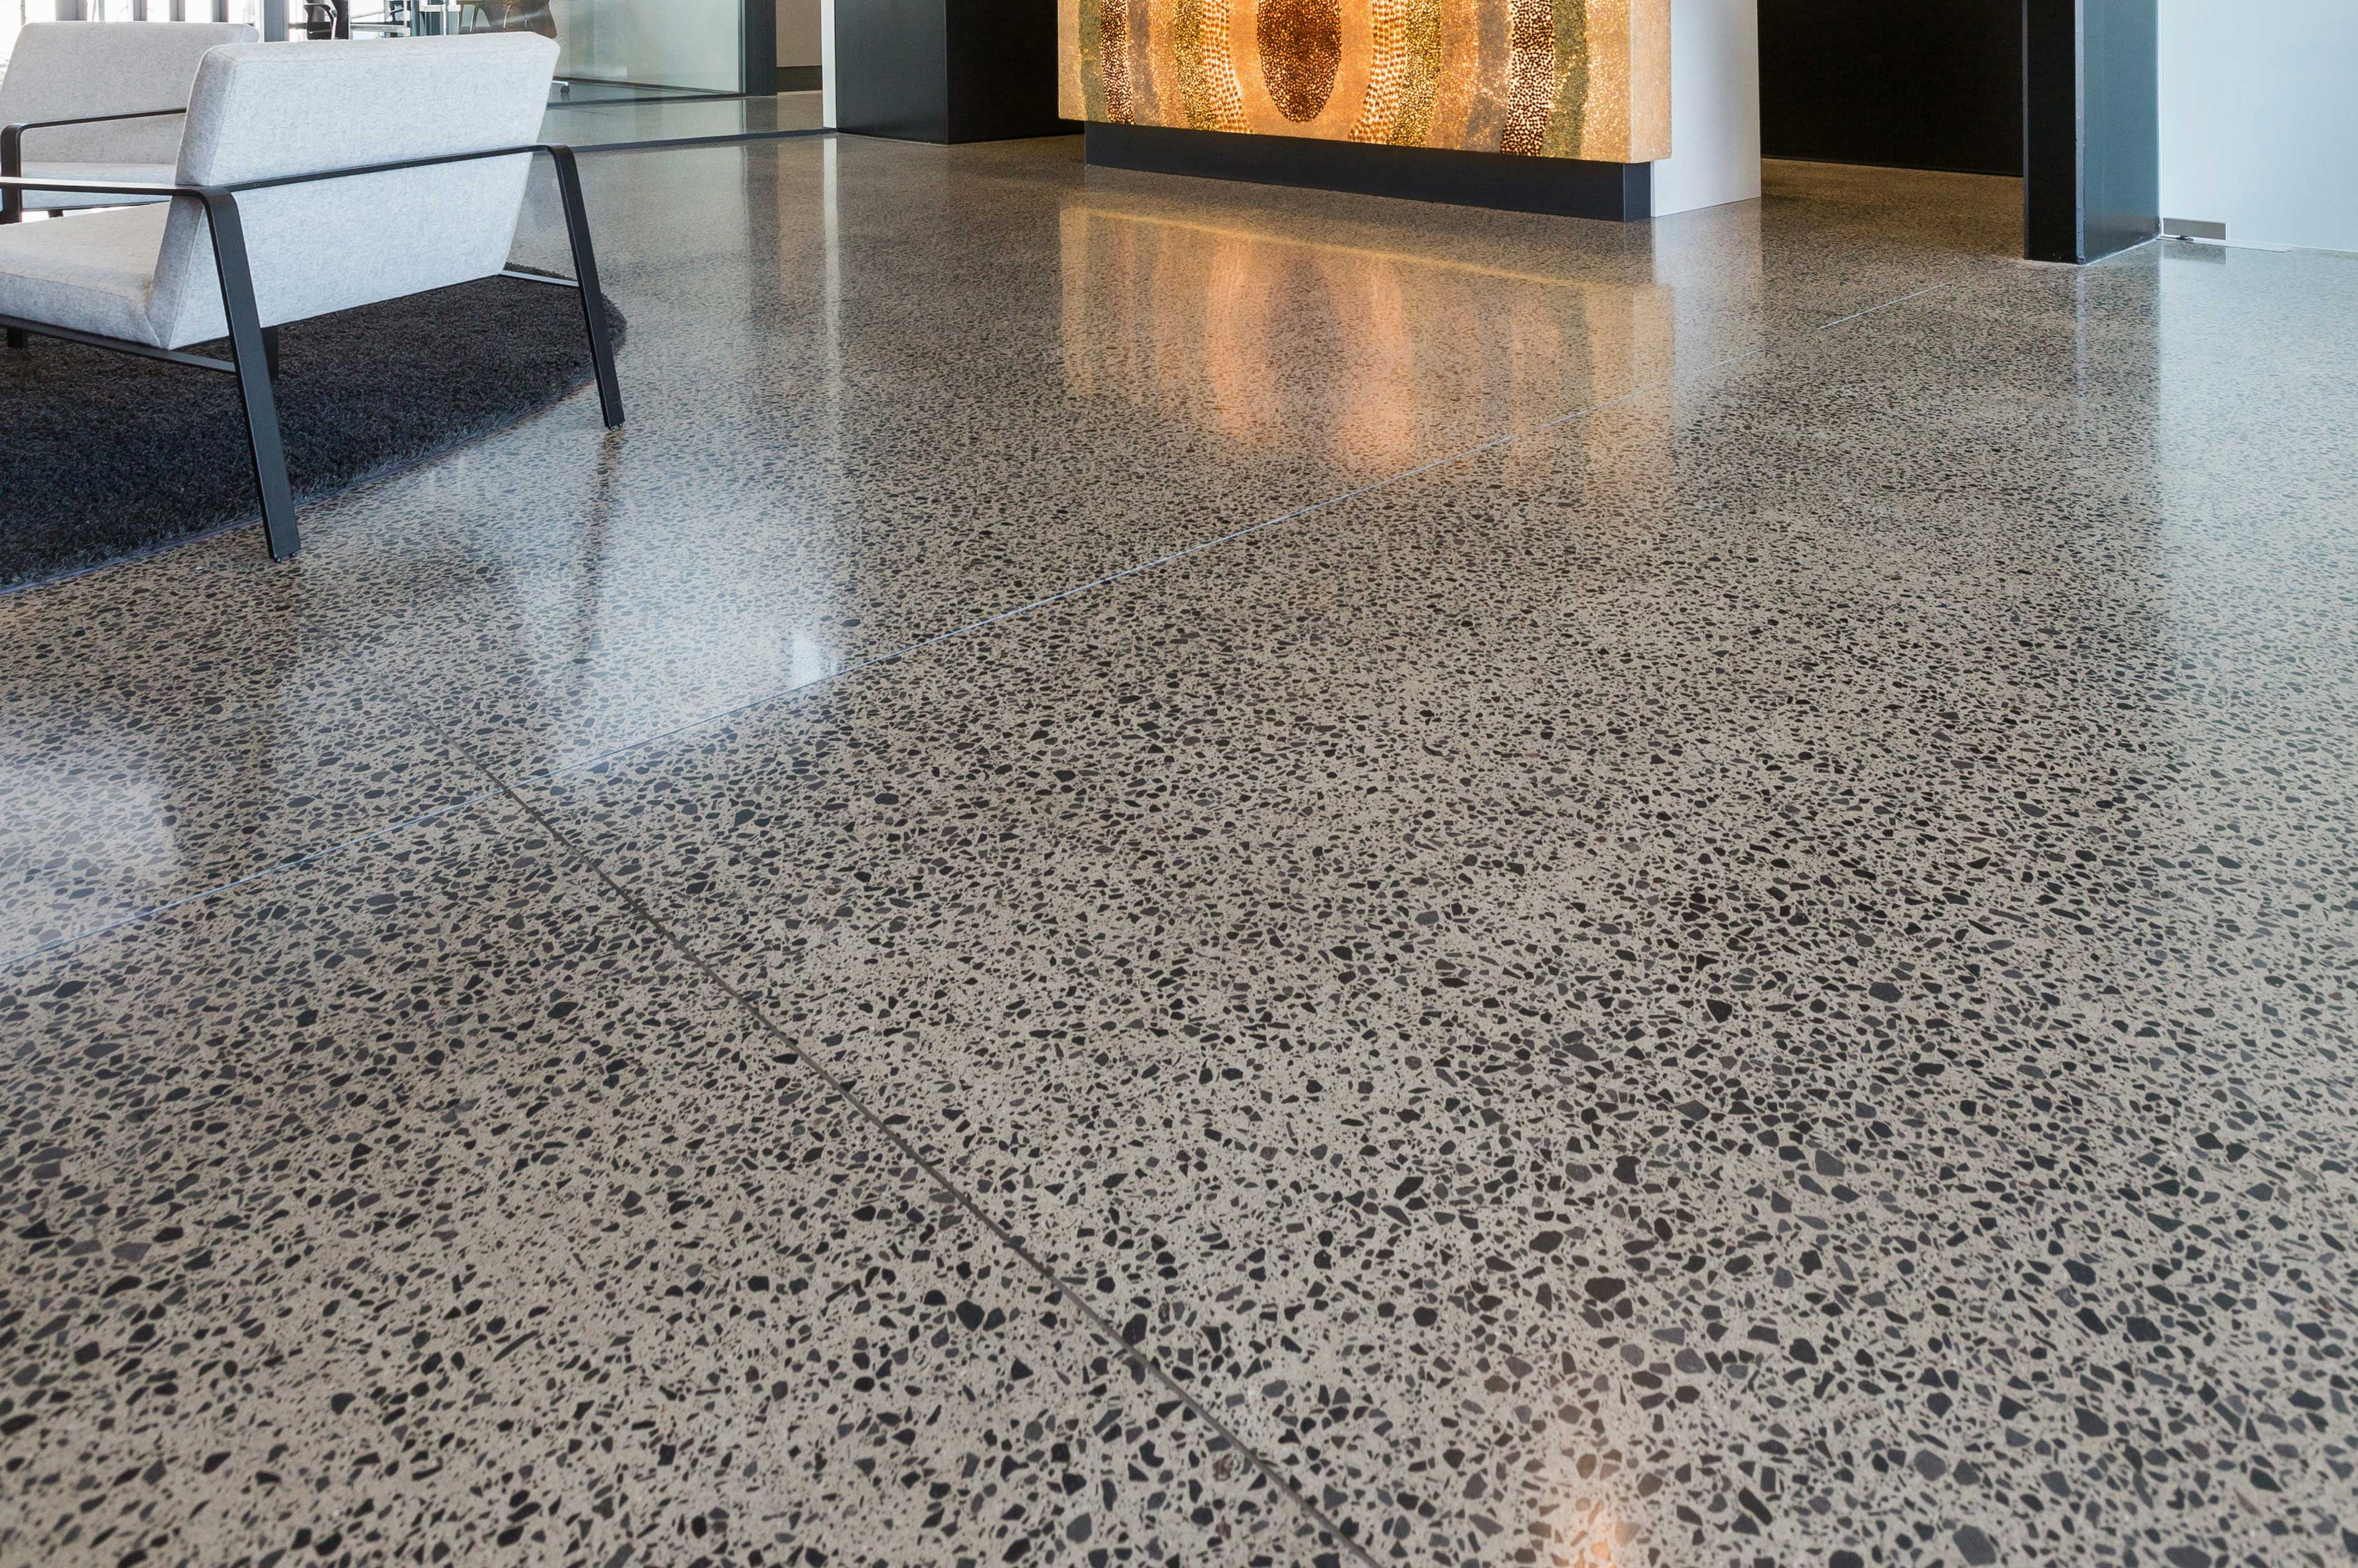 Home megafloor stunning floors great service every time for Polished concrete floors nz